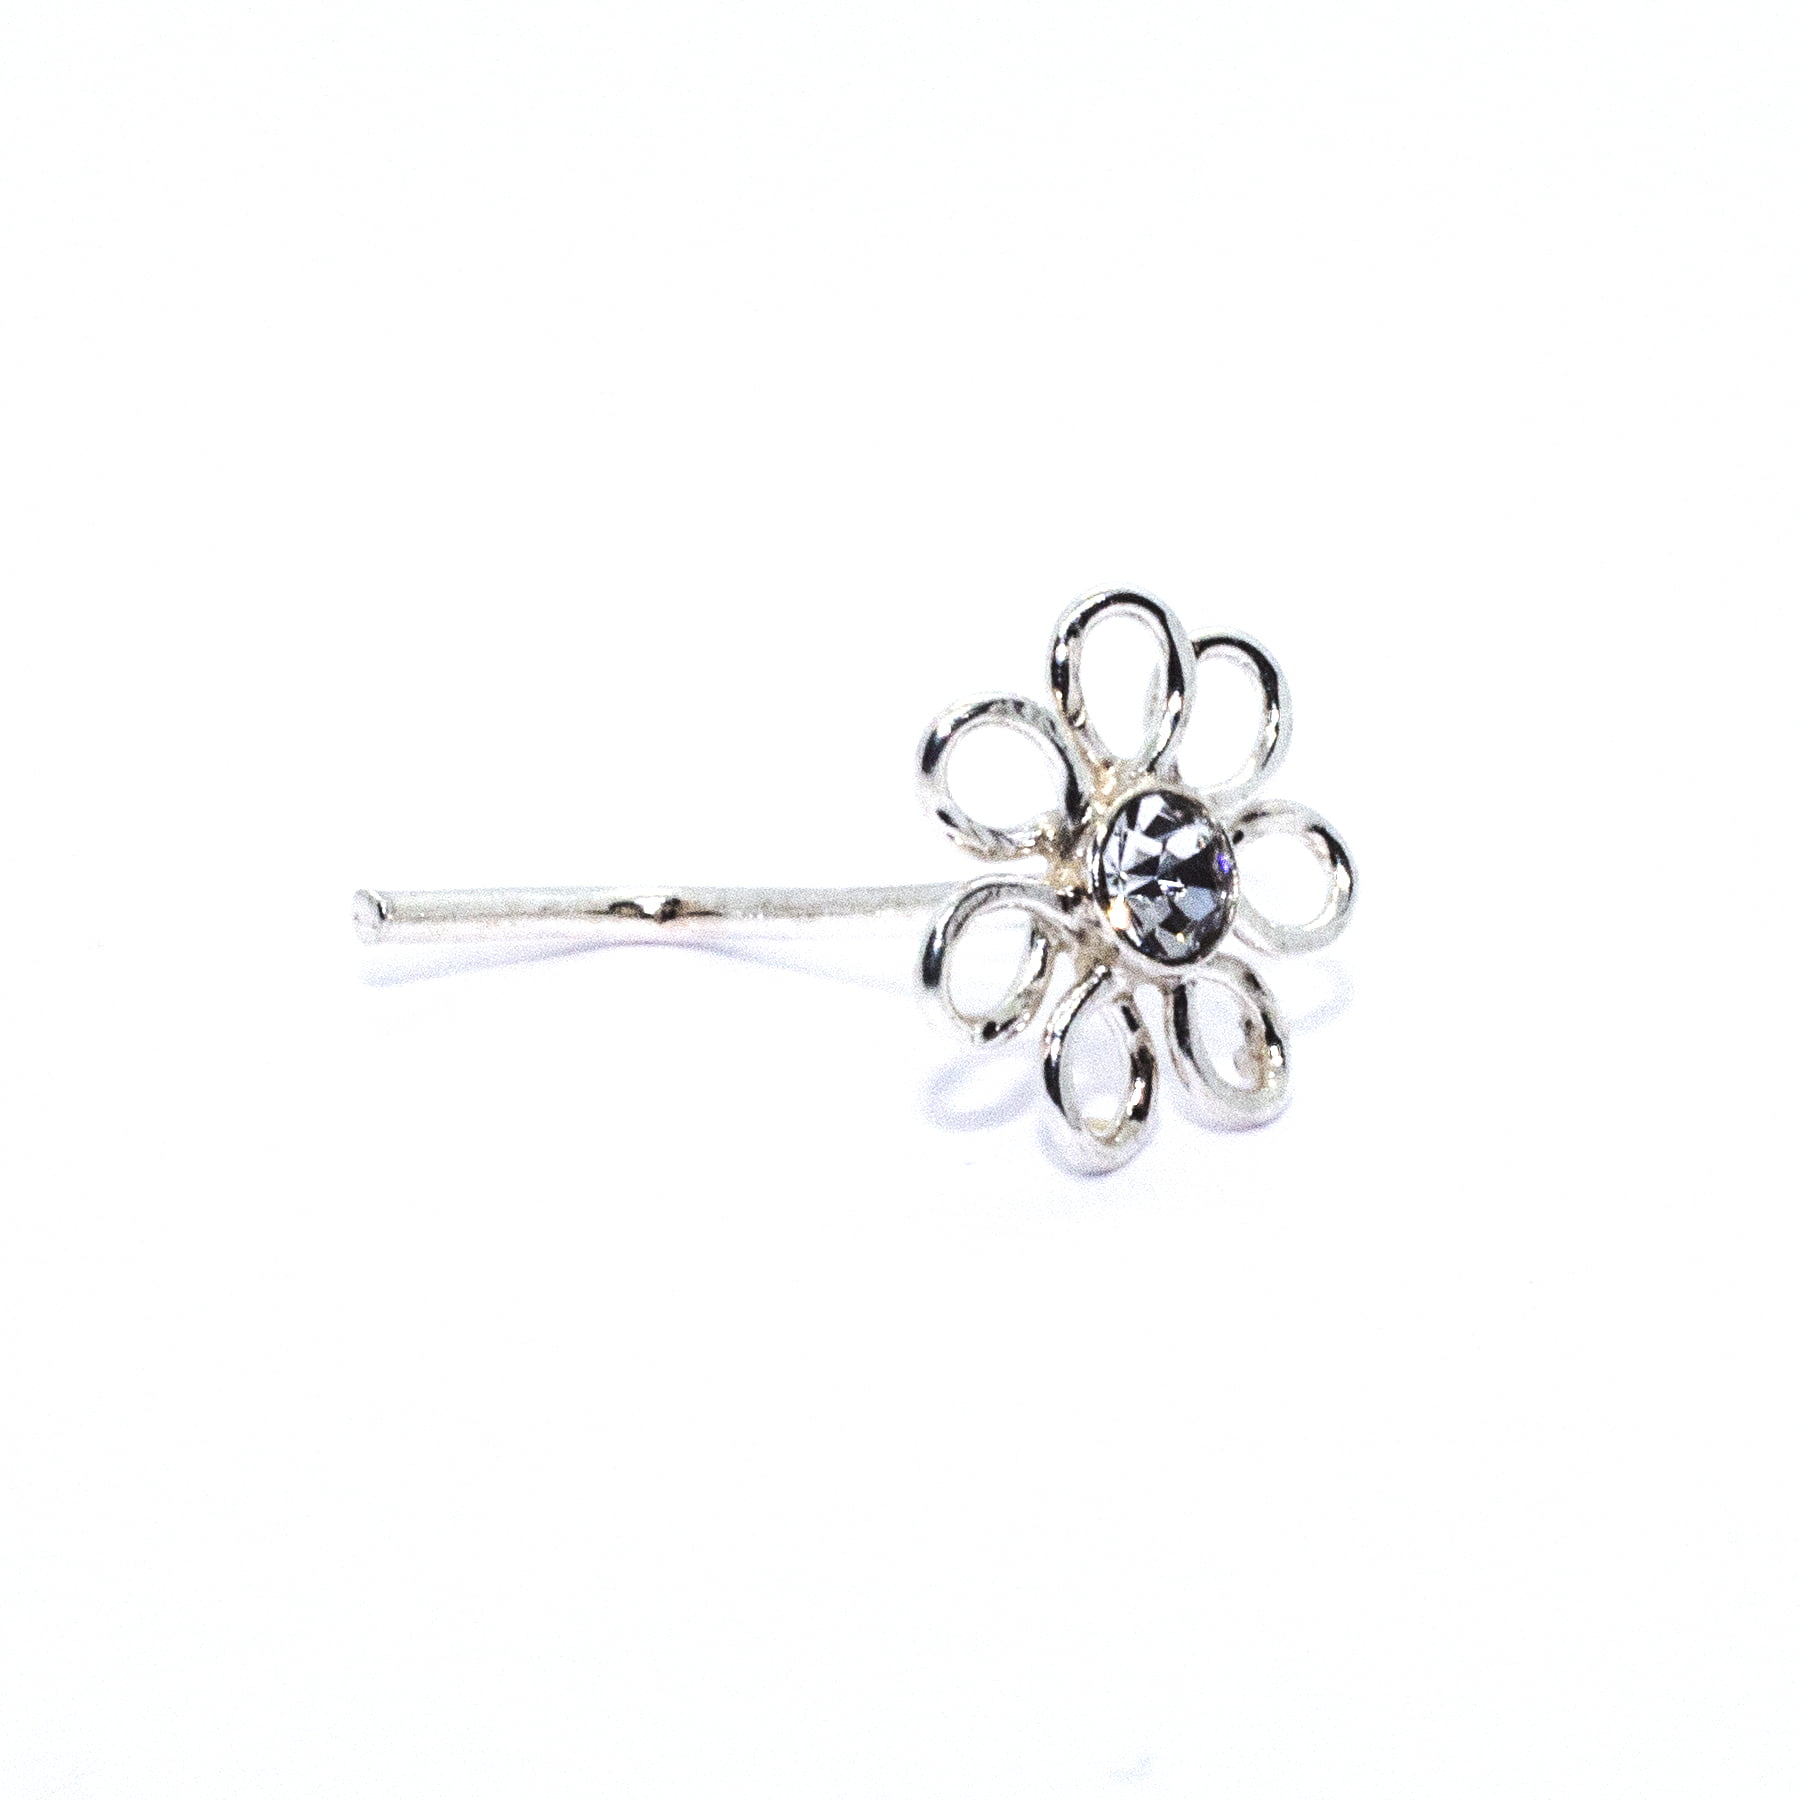 Flower with clear crystal nose stud in sterling silver